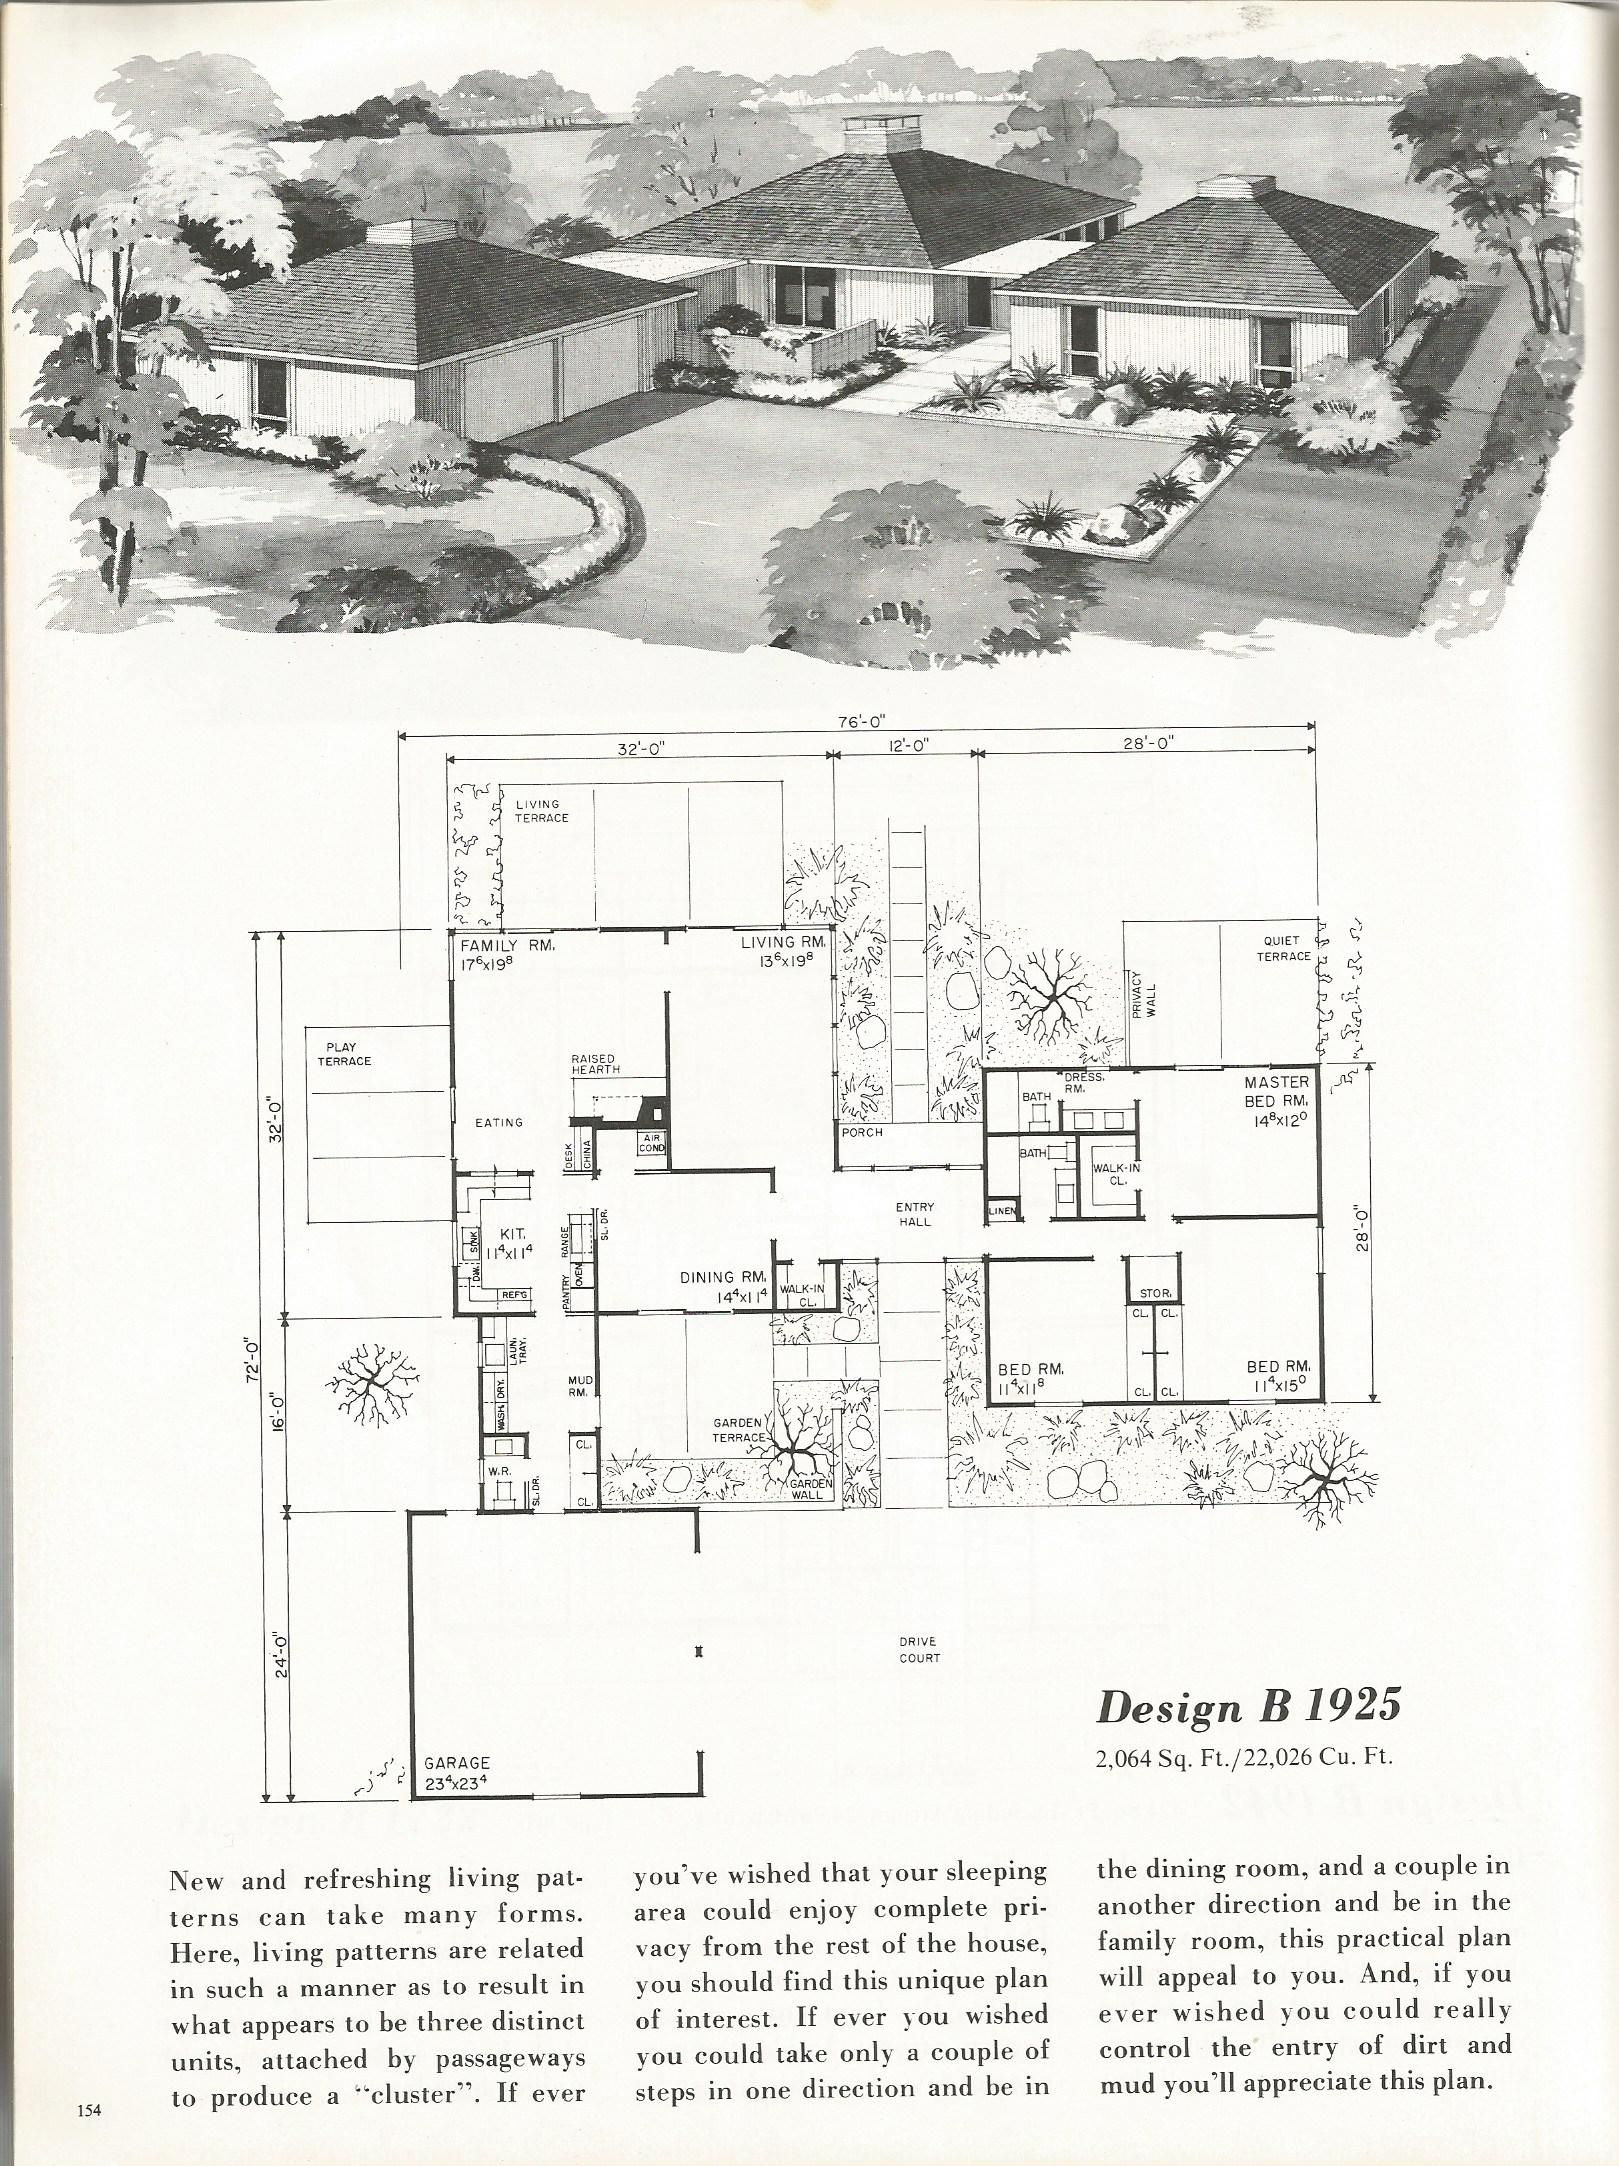 vintage house plans mid century homes 1960s homes mid century modern vintage house plans. Black Bedroom Furniture Sets. Home Design Ideas